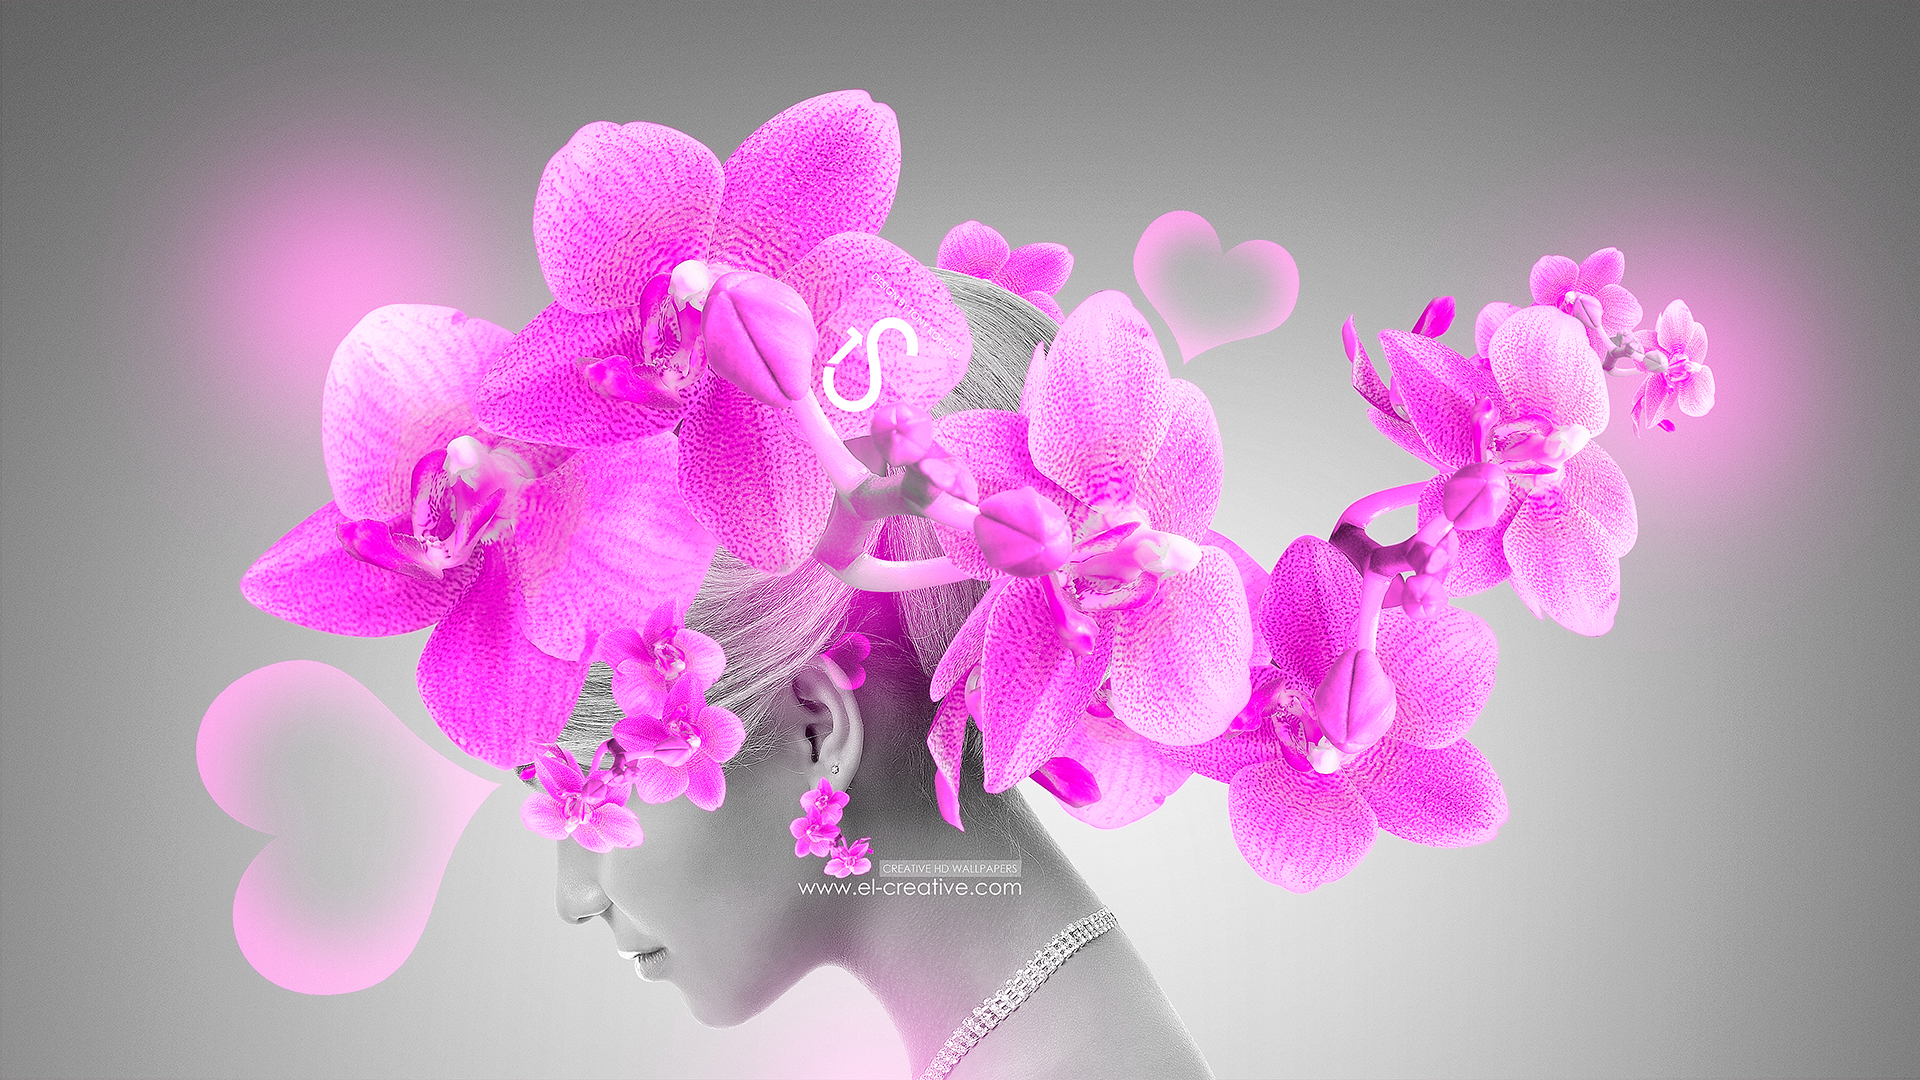 Fantasy Make Up v2 Girl Flowers Pink Light Neon 2013 HD Wallpapers by 1920x1080